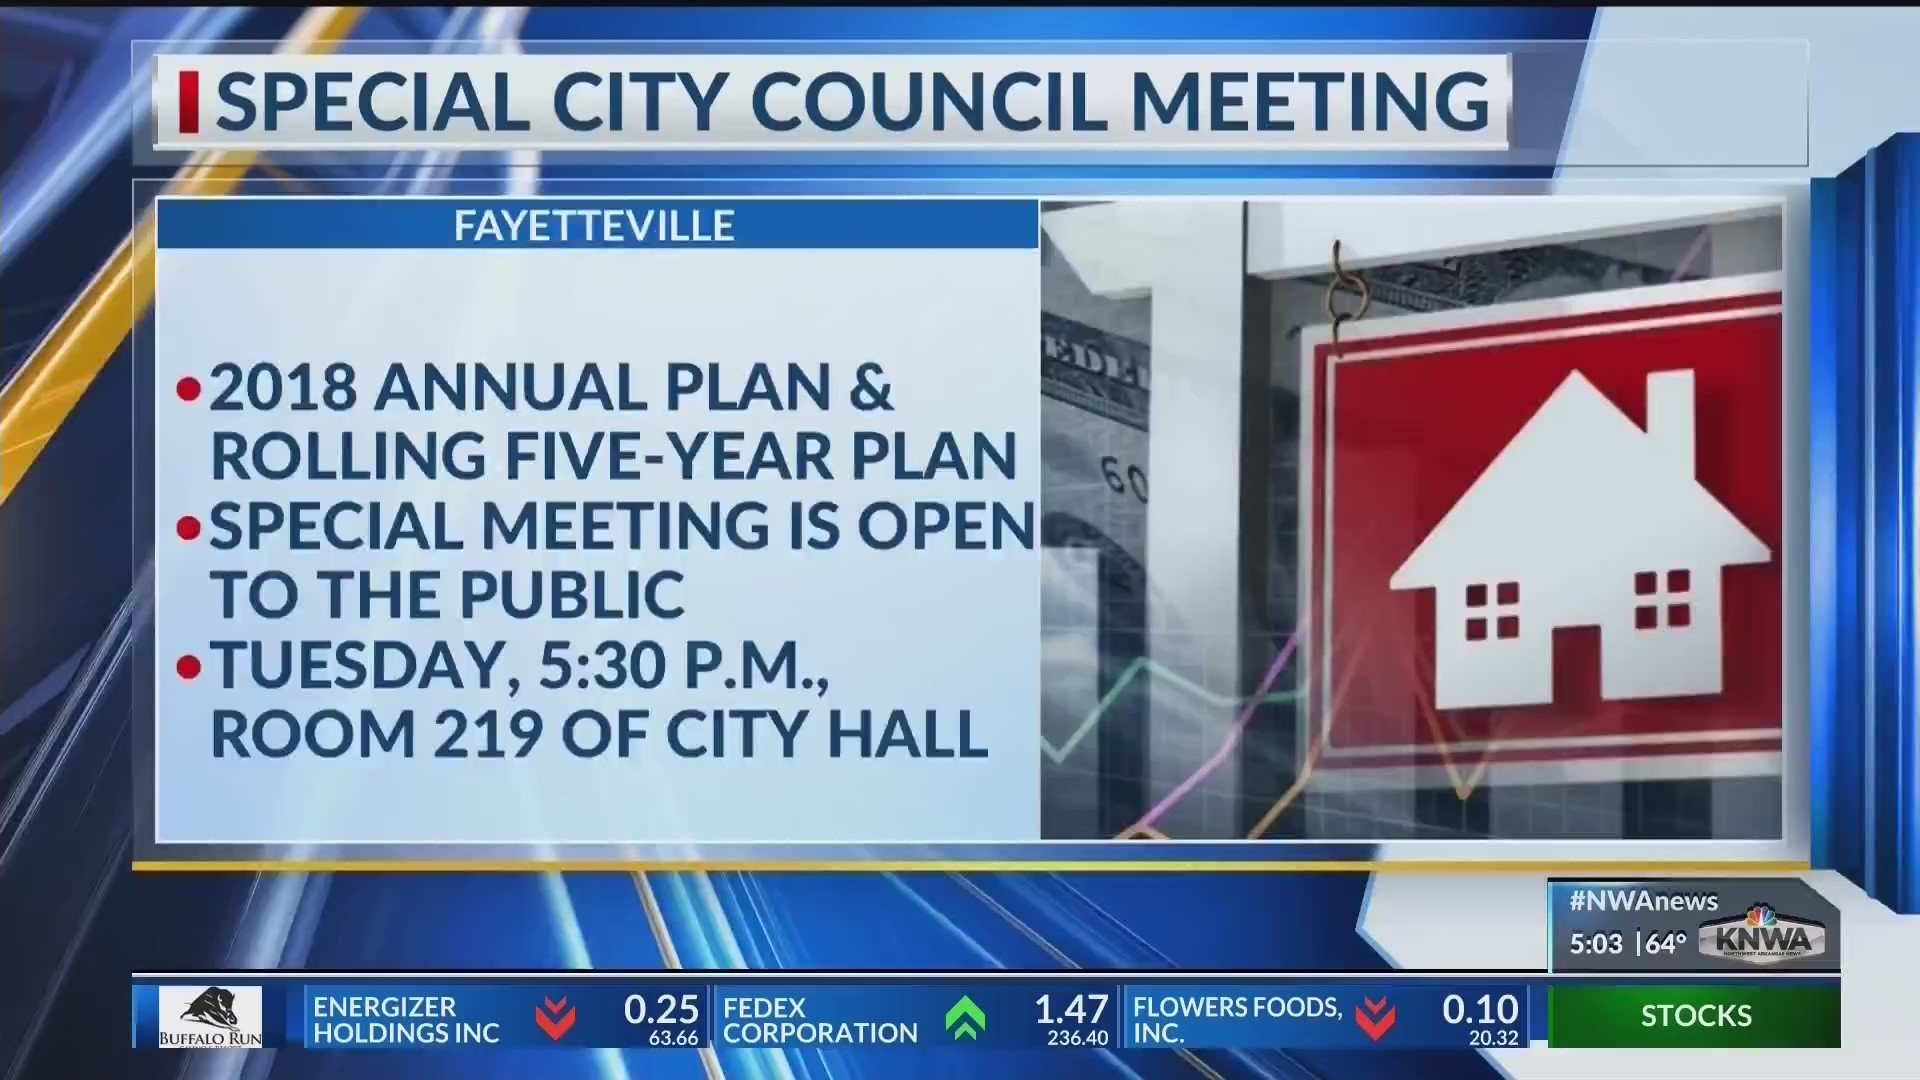 City_of_Fayetteville_Holds_Special_City__0_20180724122301